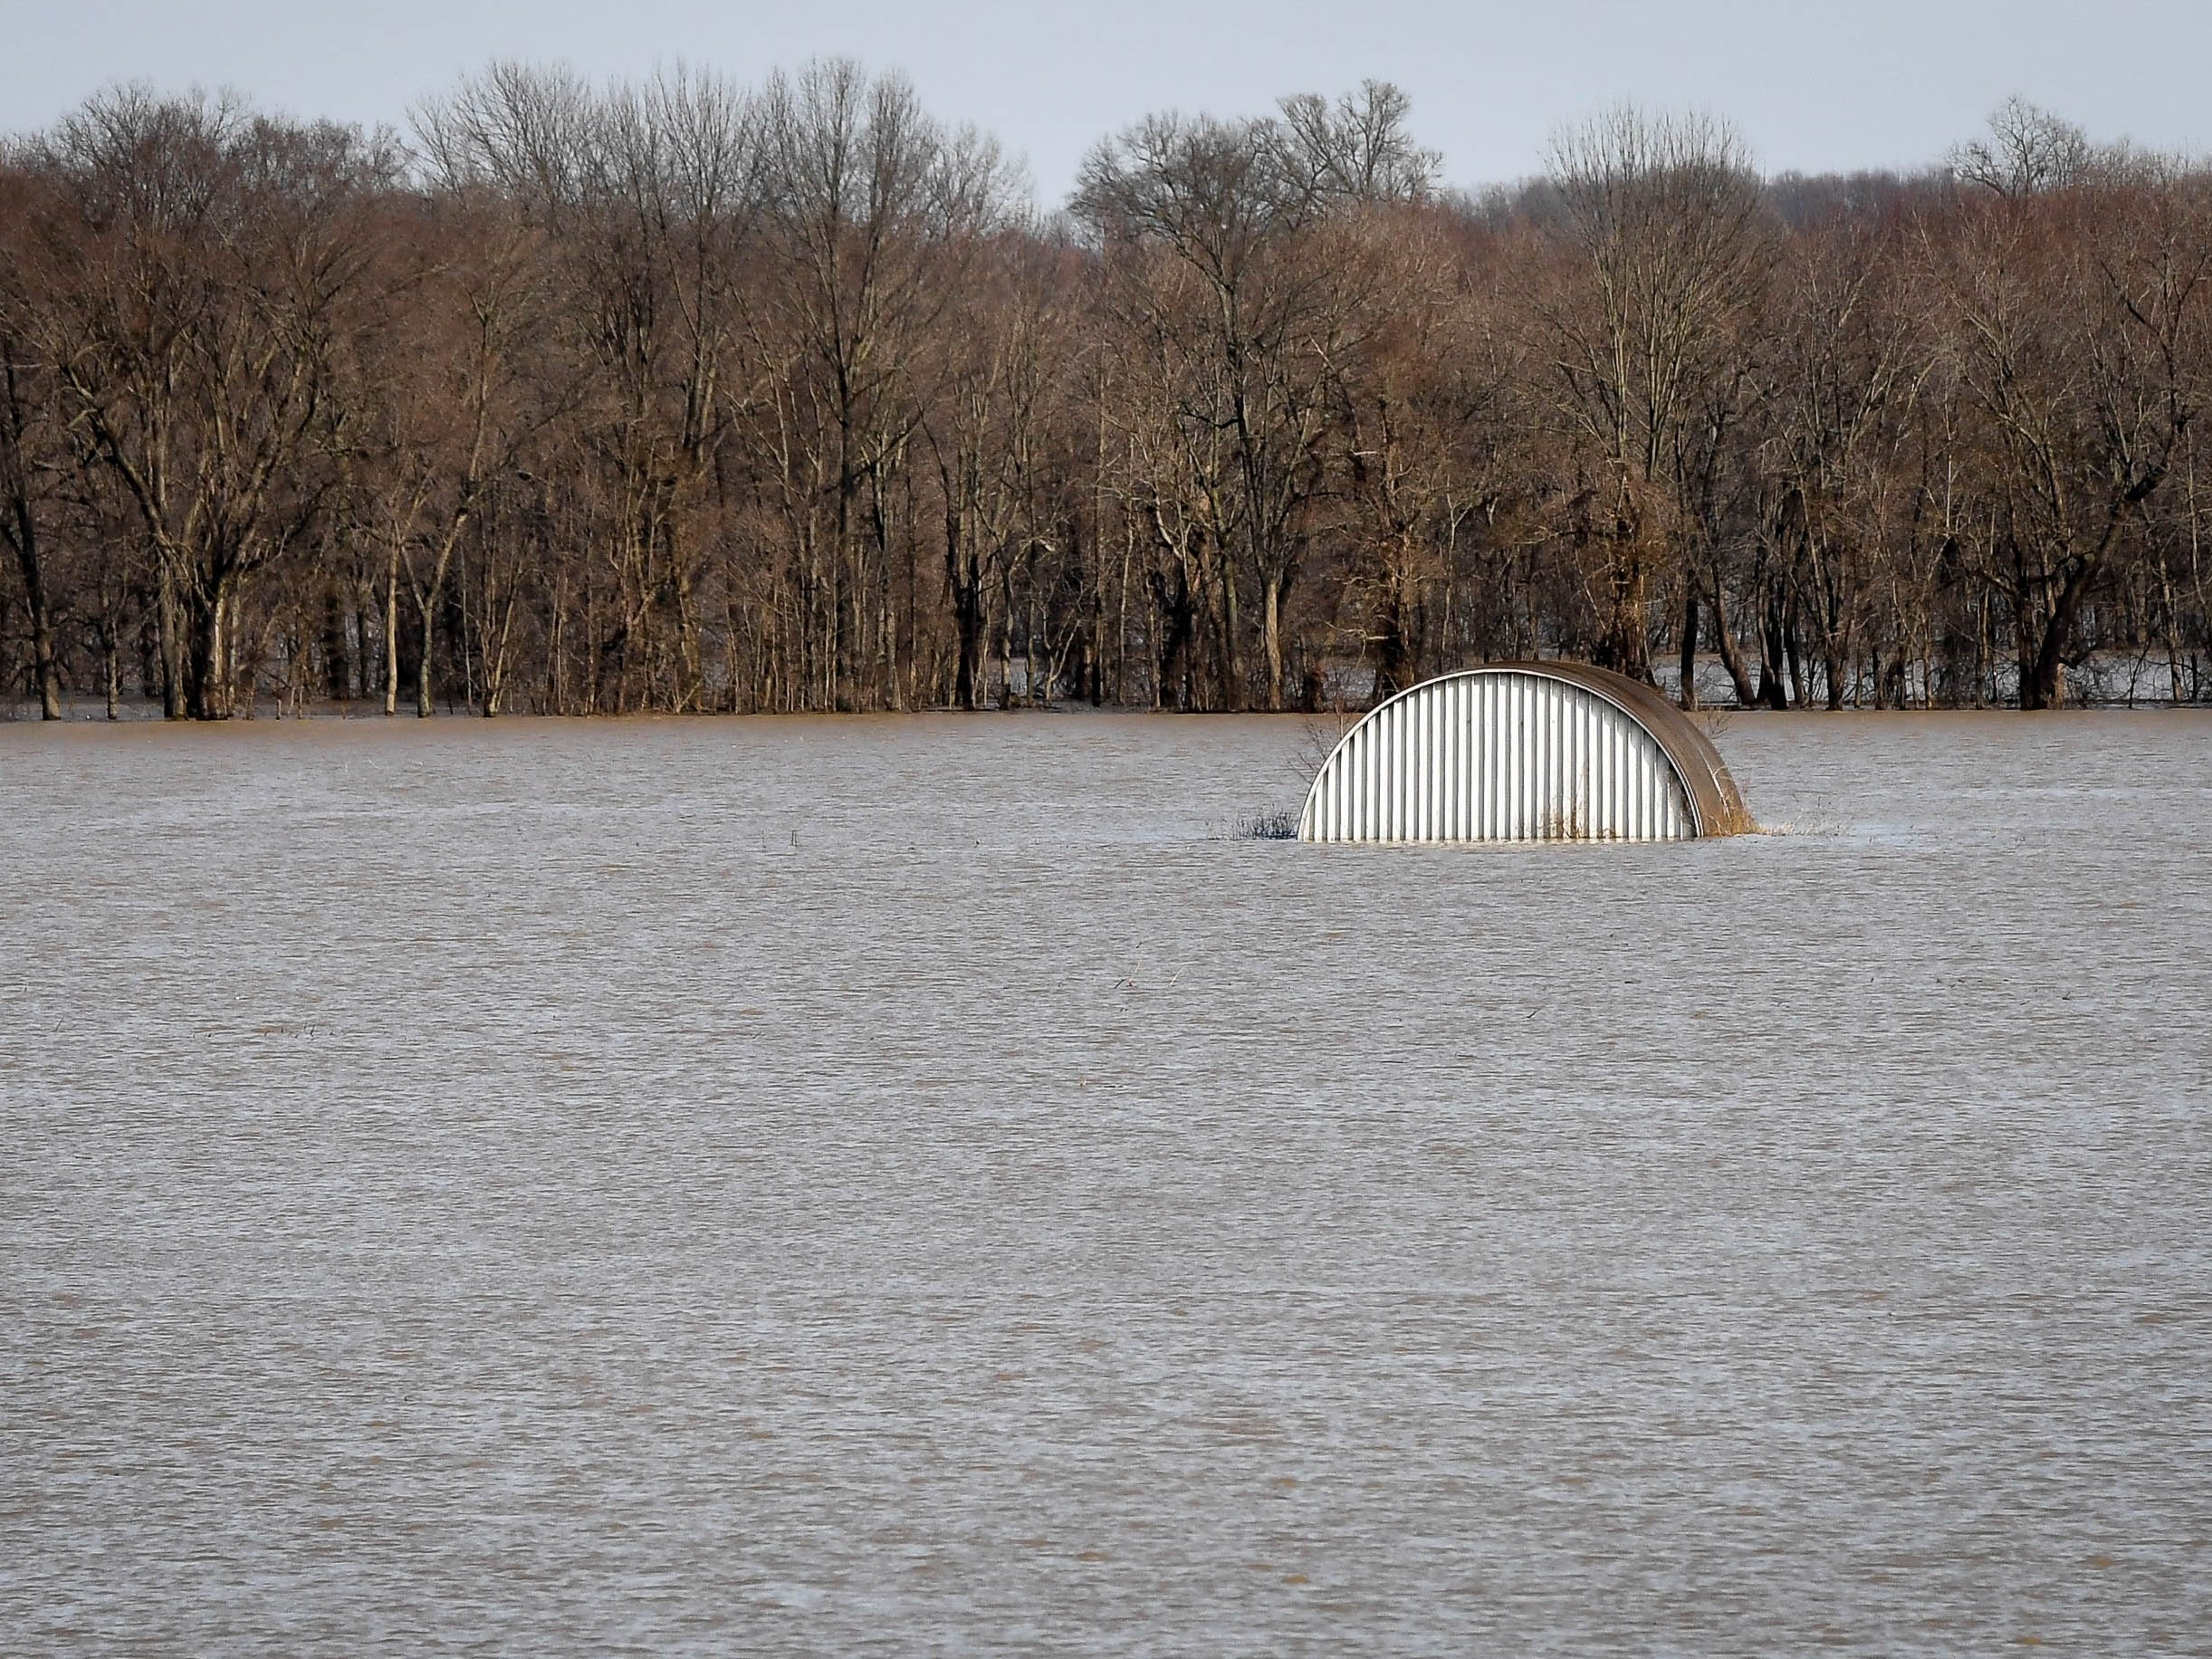 Flooding along the East Fork of the White River off of I-69 Wednesday, February 13, 2019.